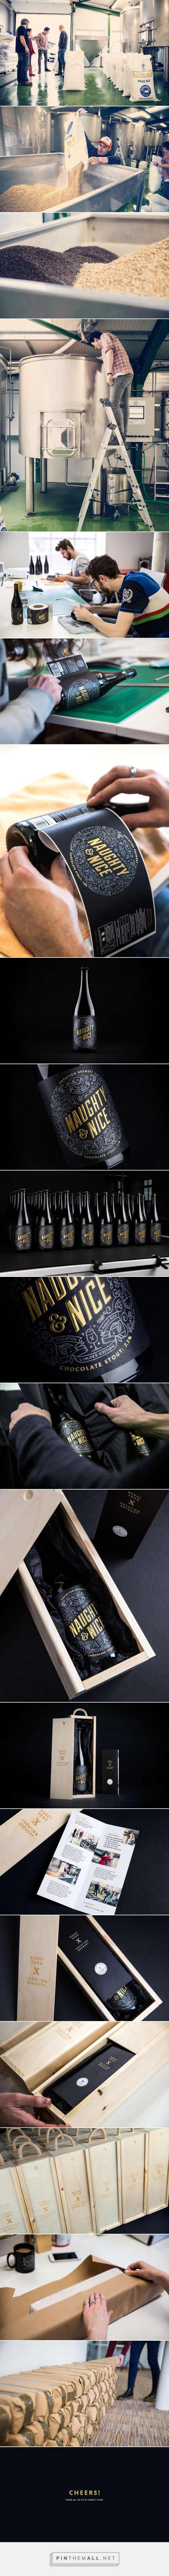 Naughty & Nice Beer Christmas Packaging designed by Robot Food - http://www.packagingoftheworld.com/2015/12/robot-food-x-vocation-brewery.html